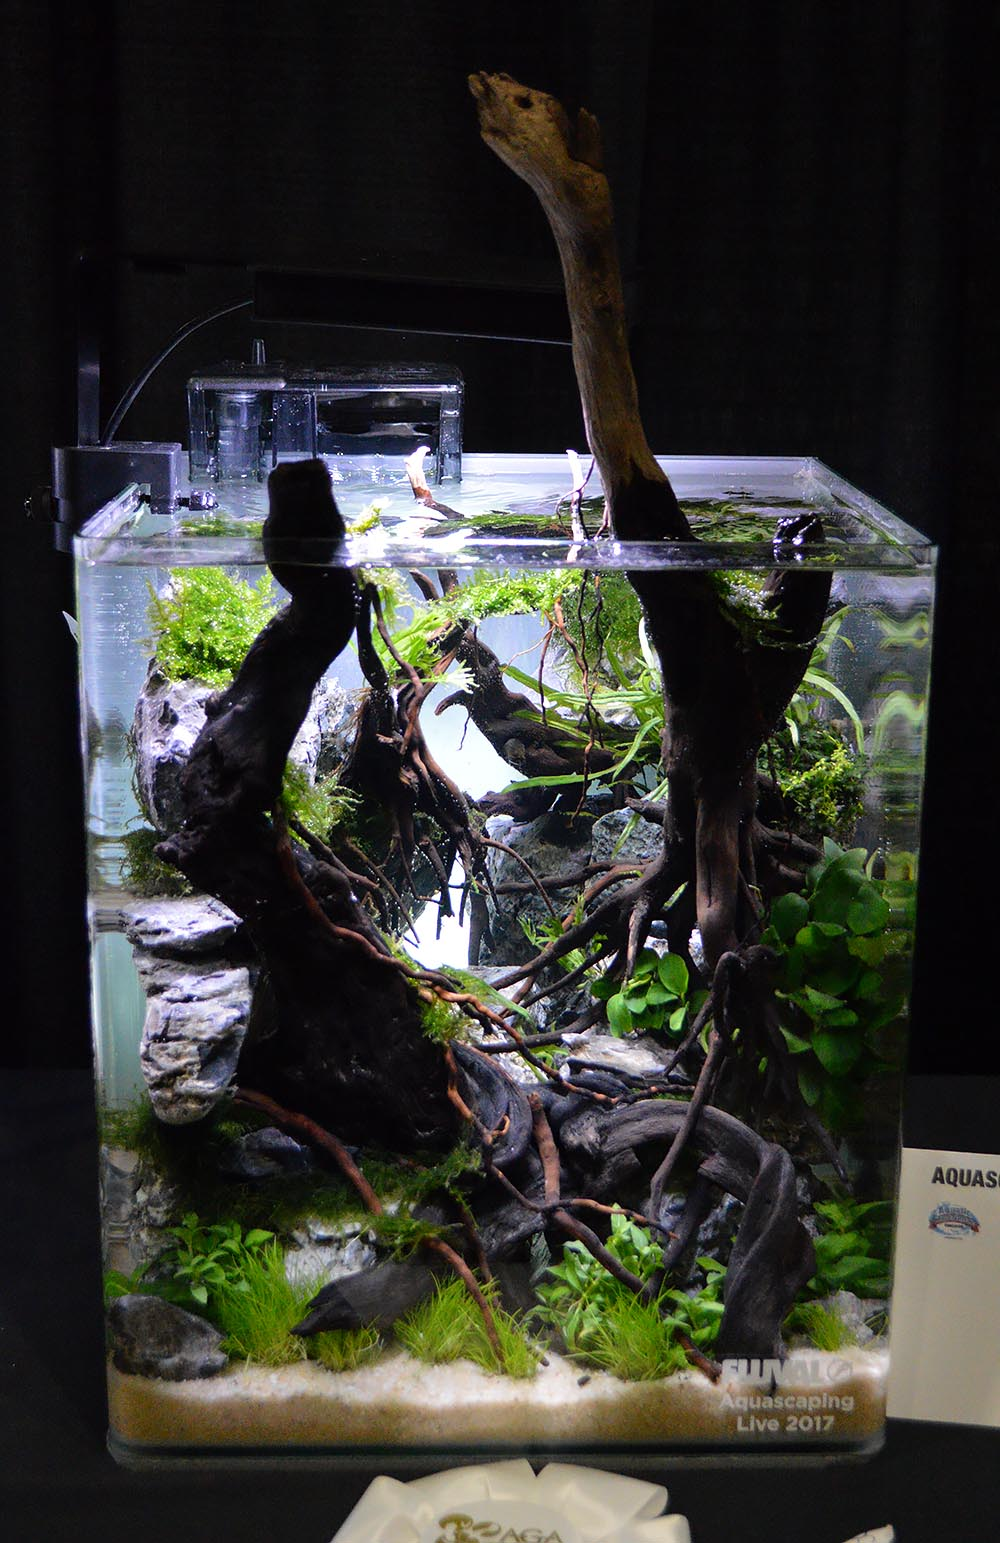 The aquascaping entry from Hiep Hong earned the 4th place ranking.